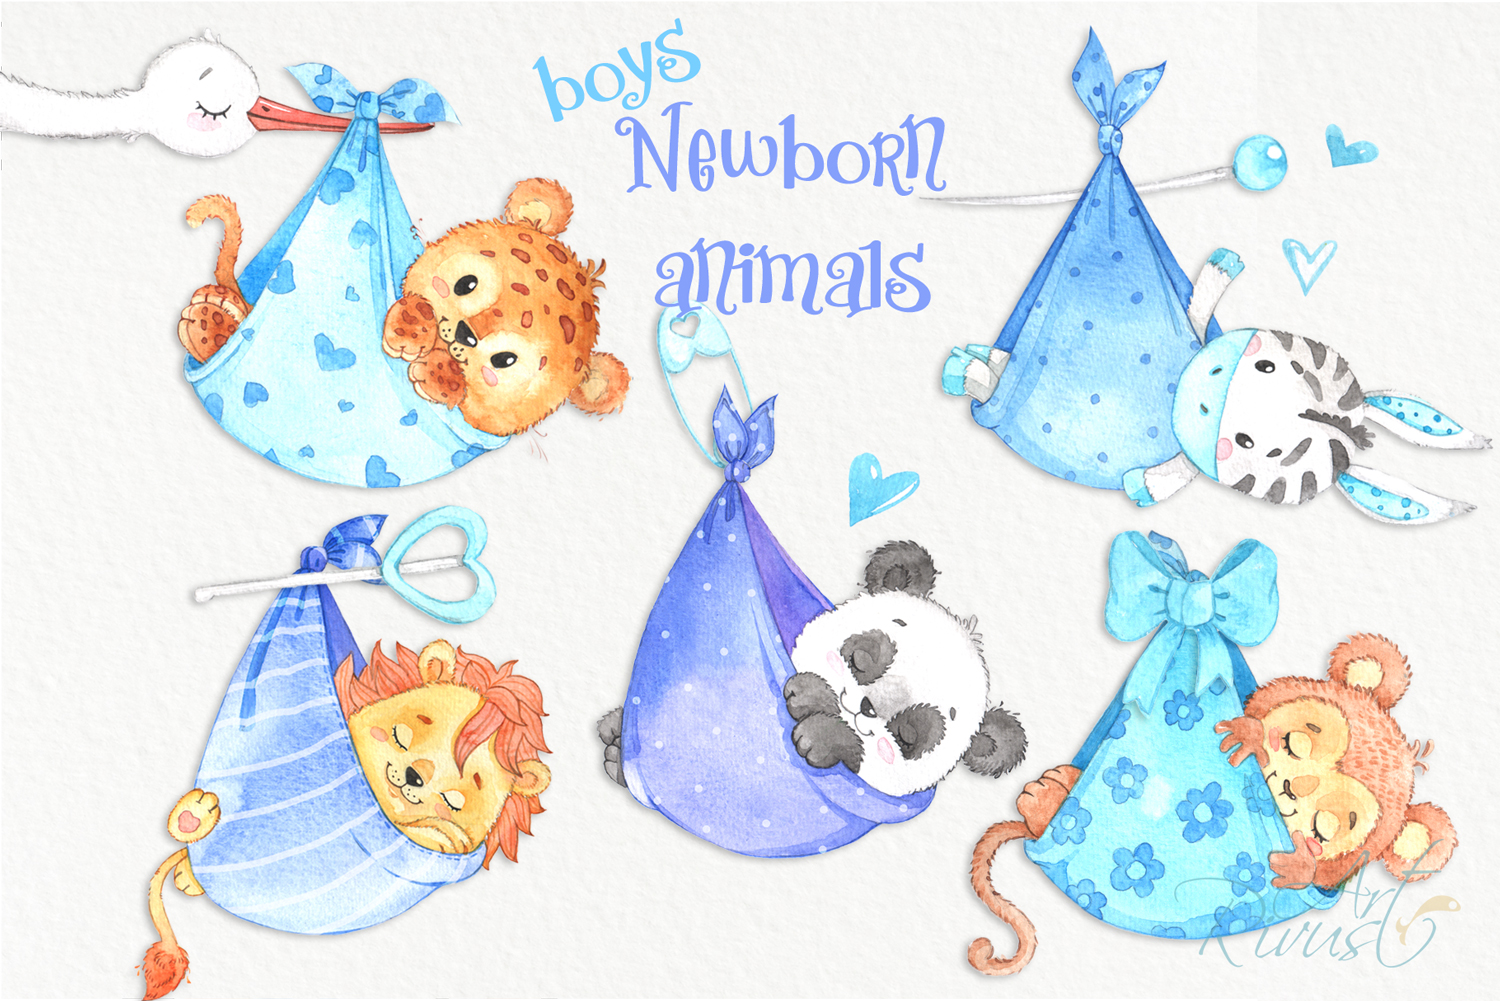 It's a boy Newborn animals clipart PNG download. African Saf example image 1